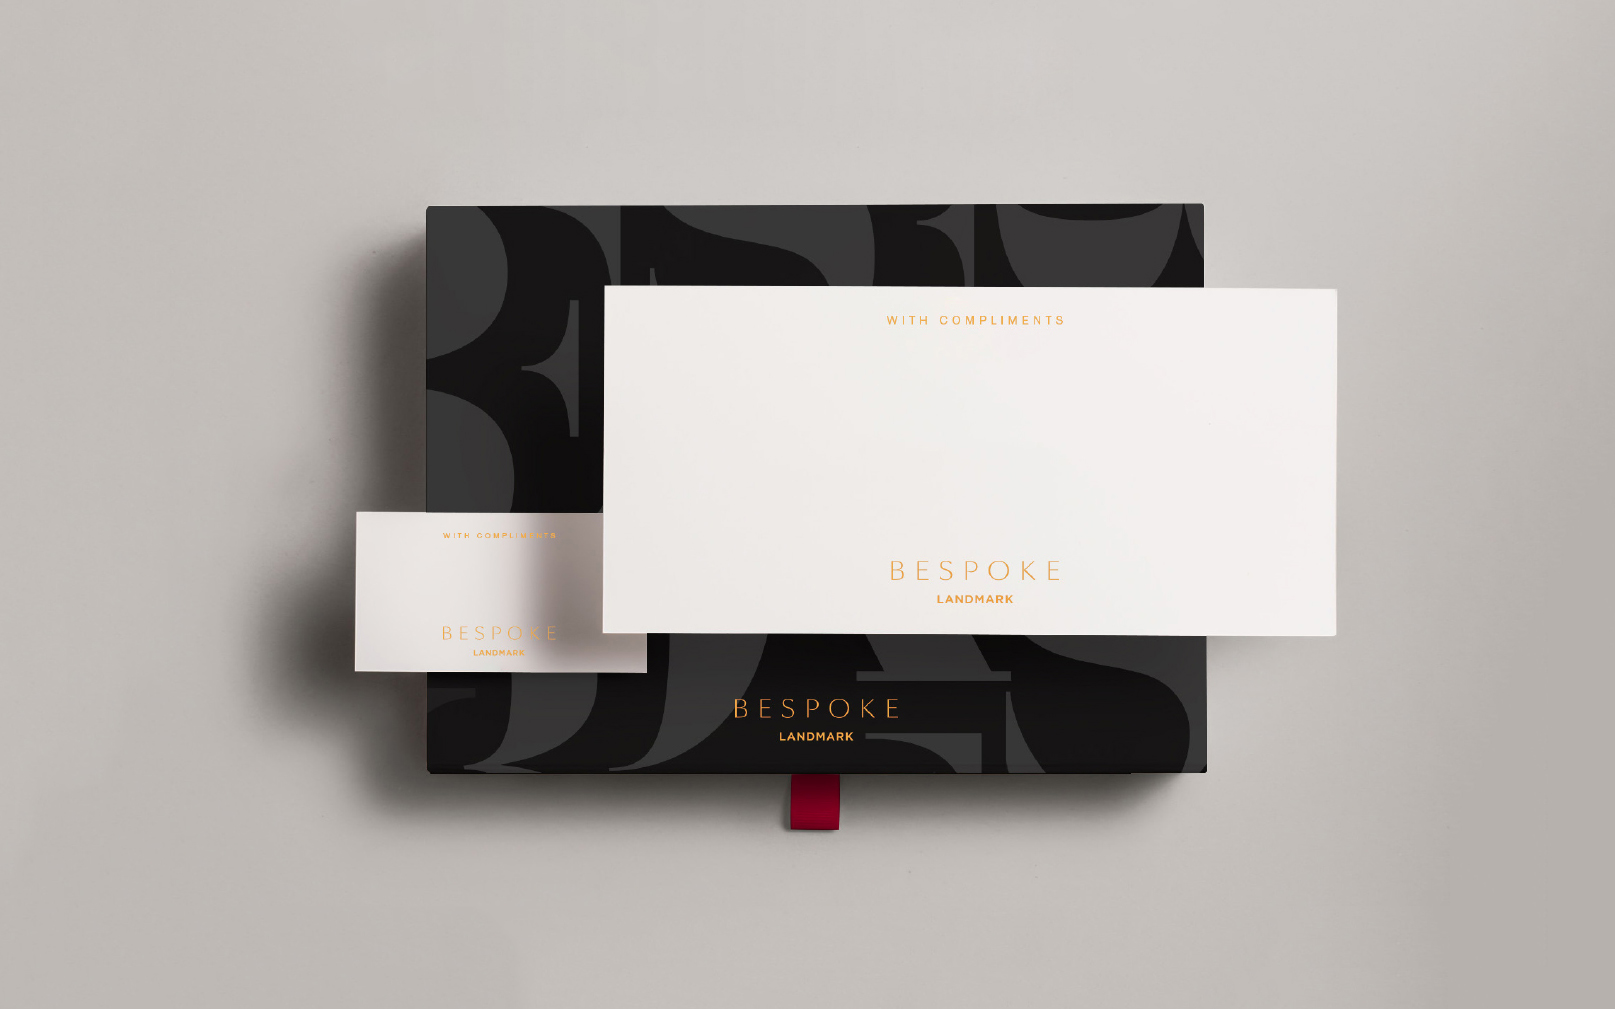 Pentagram_design_bespoke_landmark_galia_rybitskaya_welcome_pack_wide.jpg